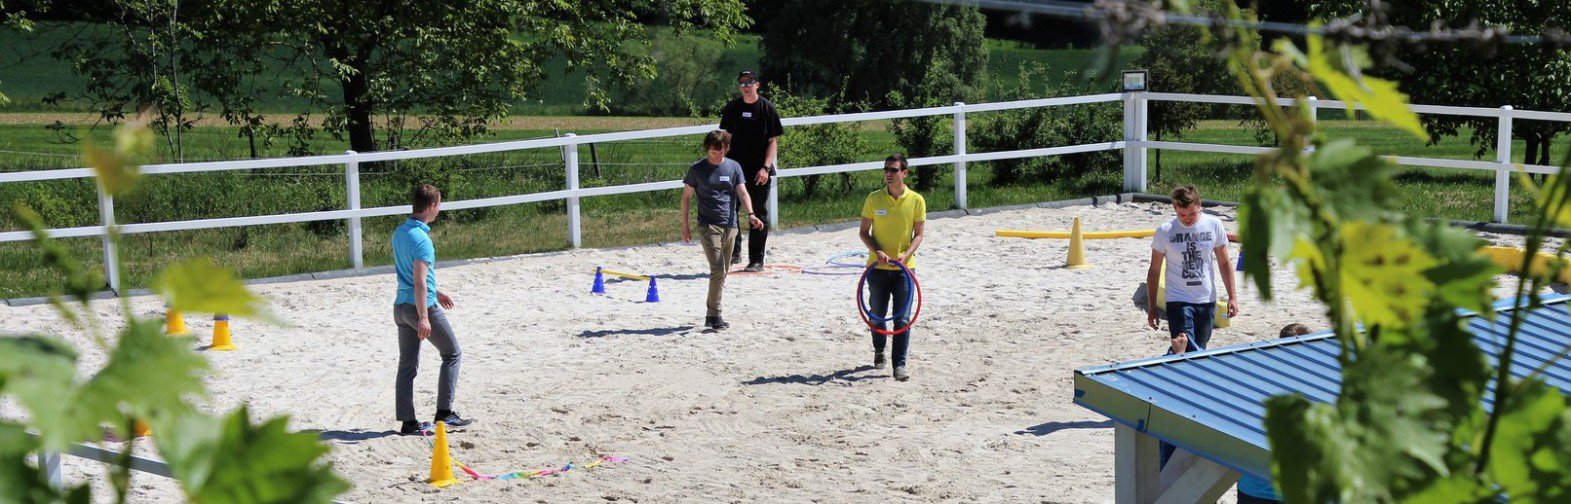 Team Building with horses